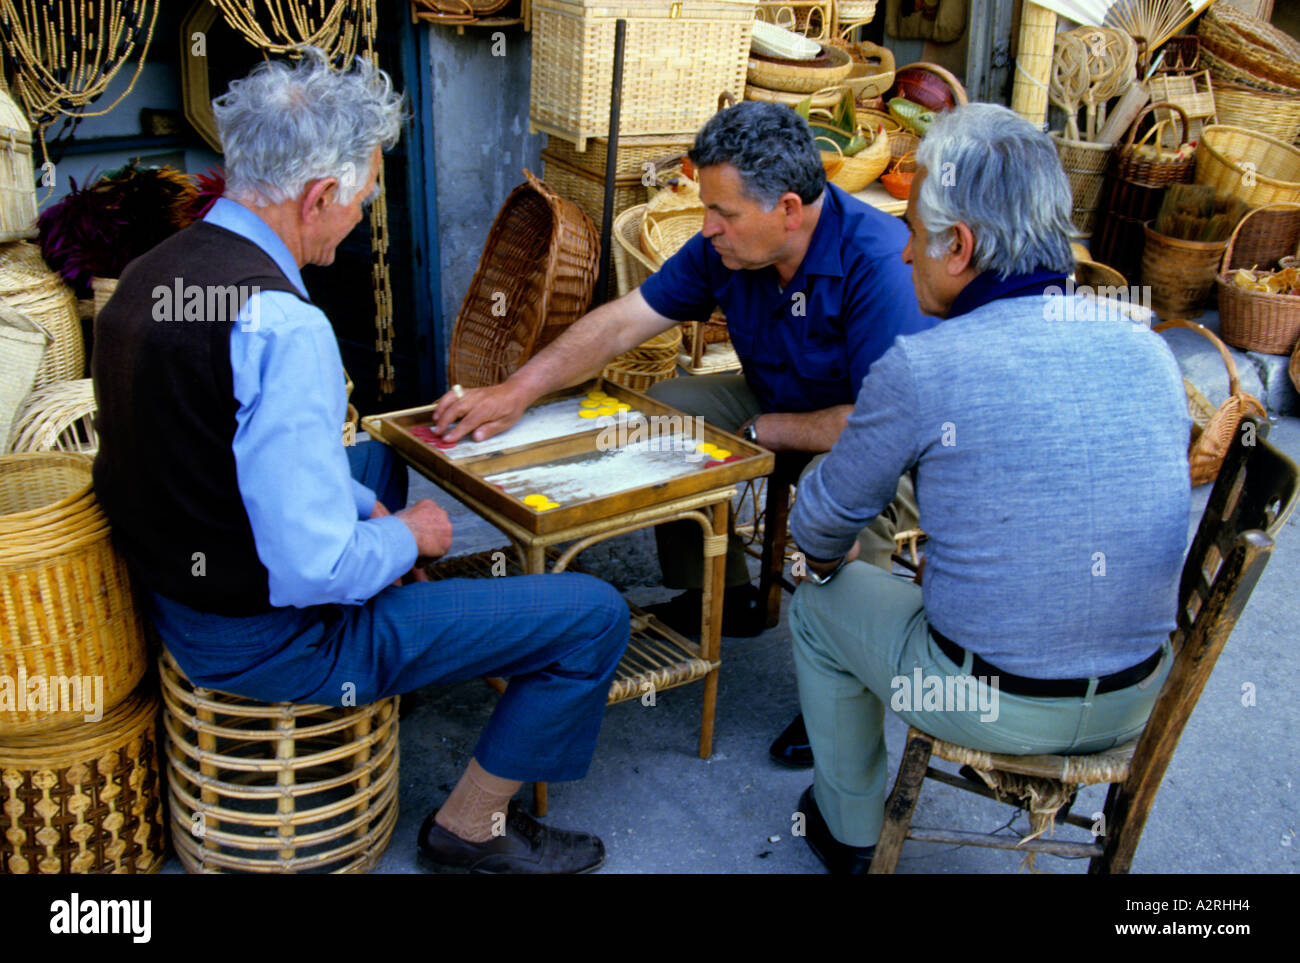 Greek gambling games